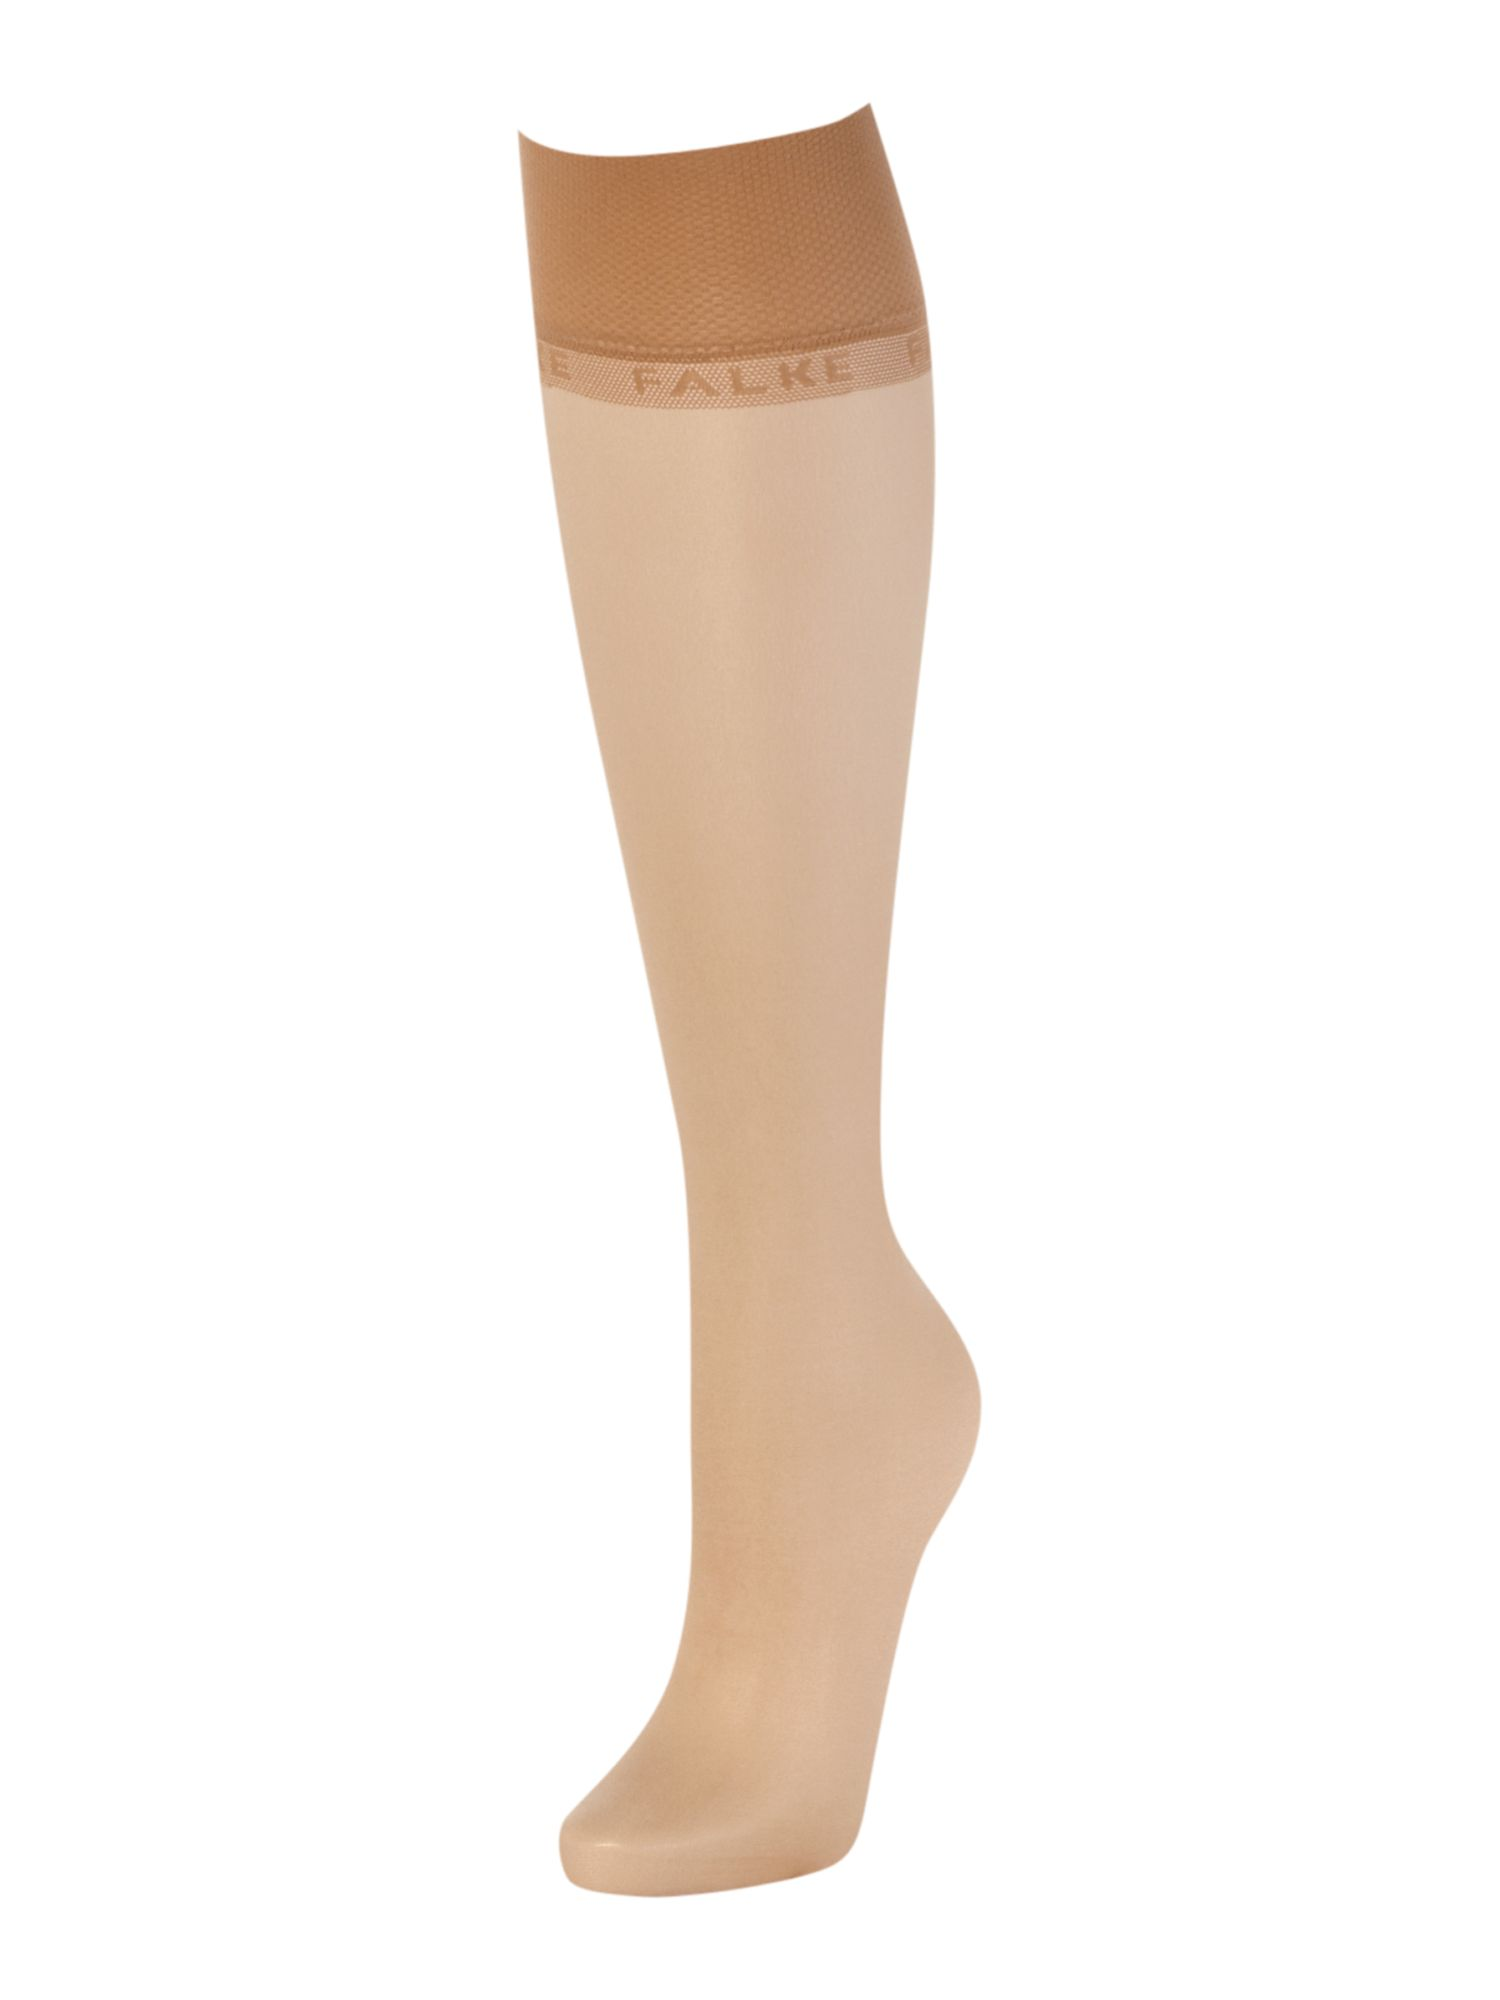 Falke Shelina 12 denier knee high socks Brazil